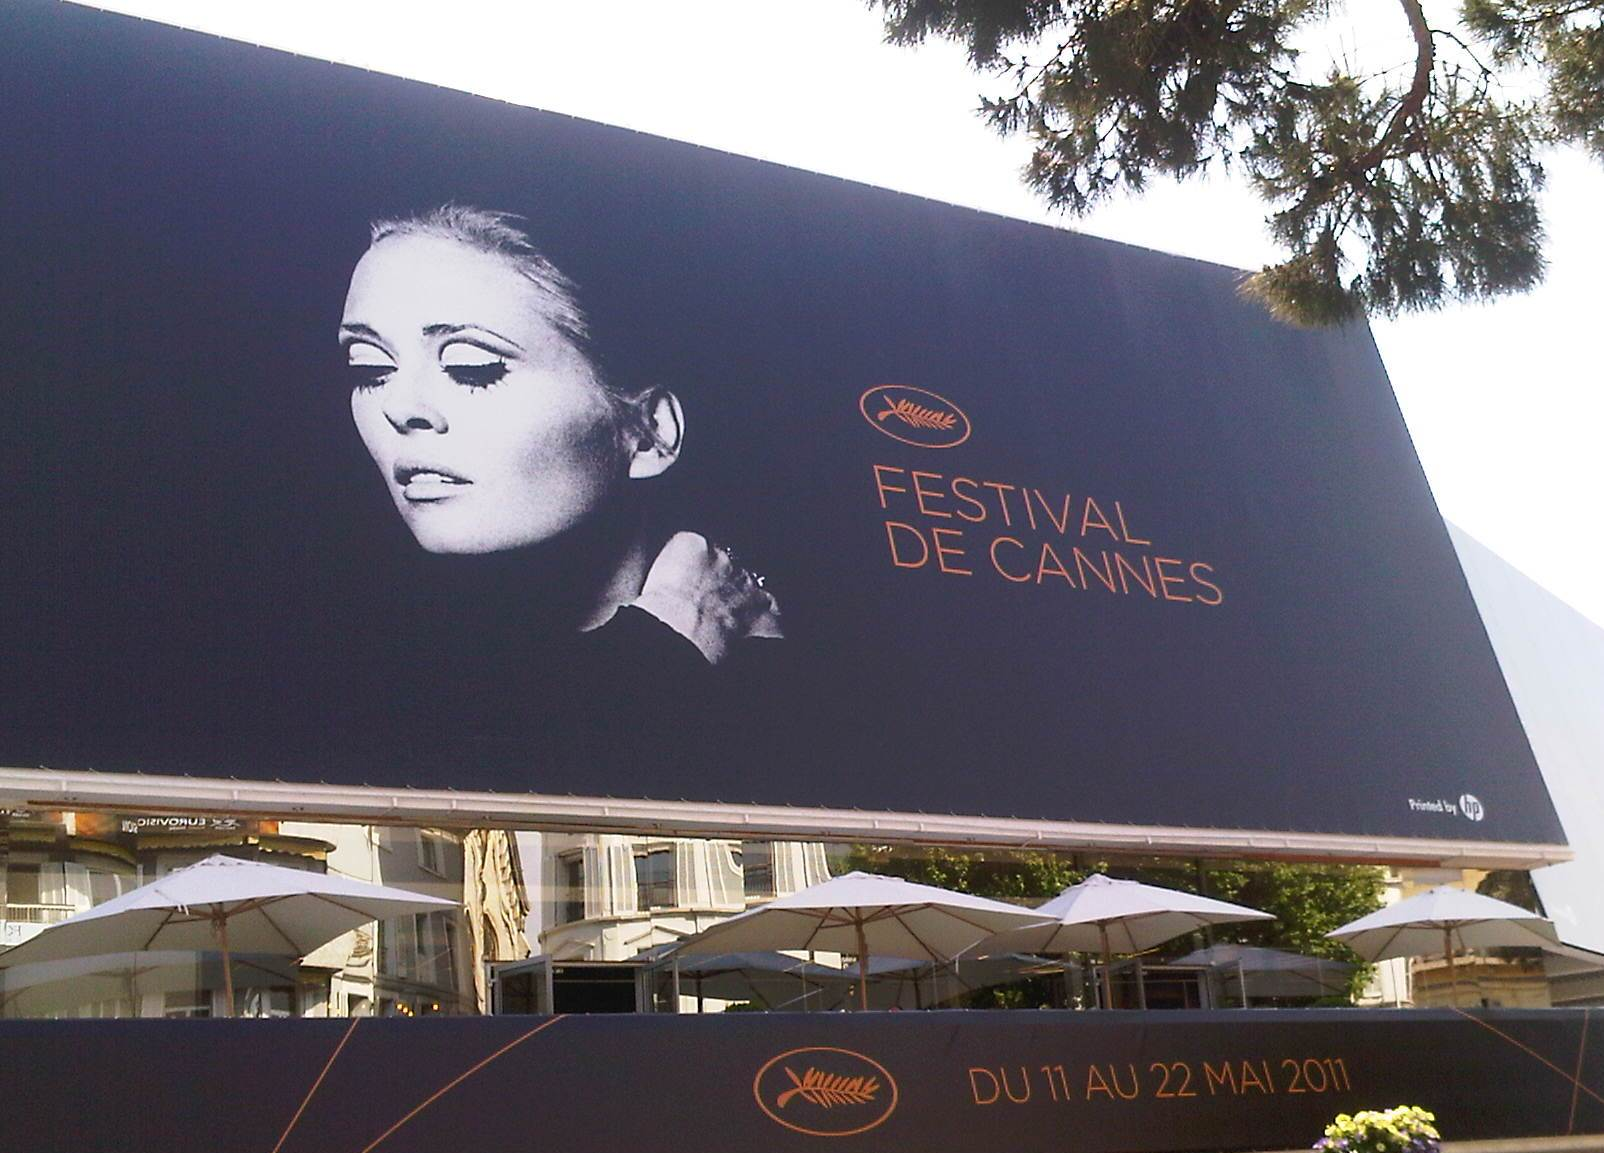 cannes_banner_20110510180419